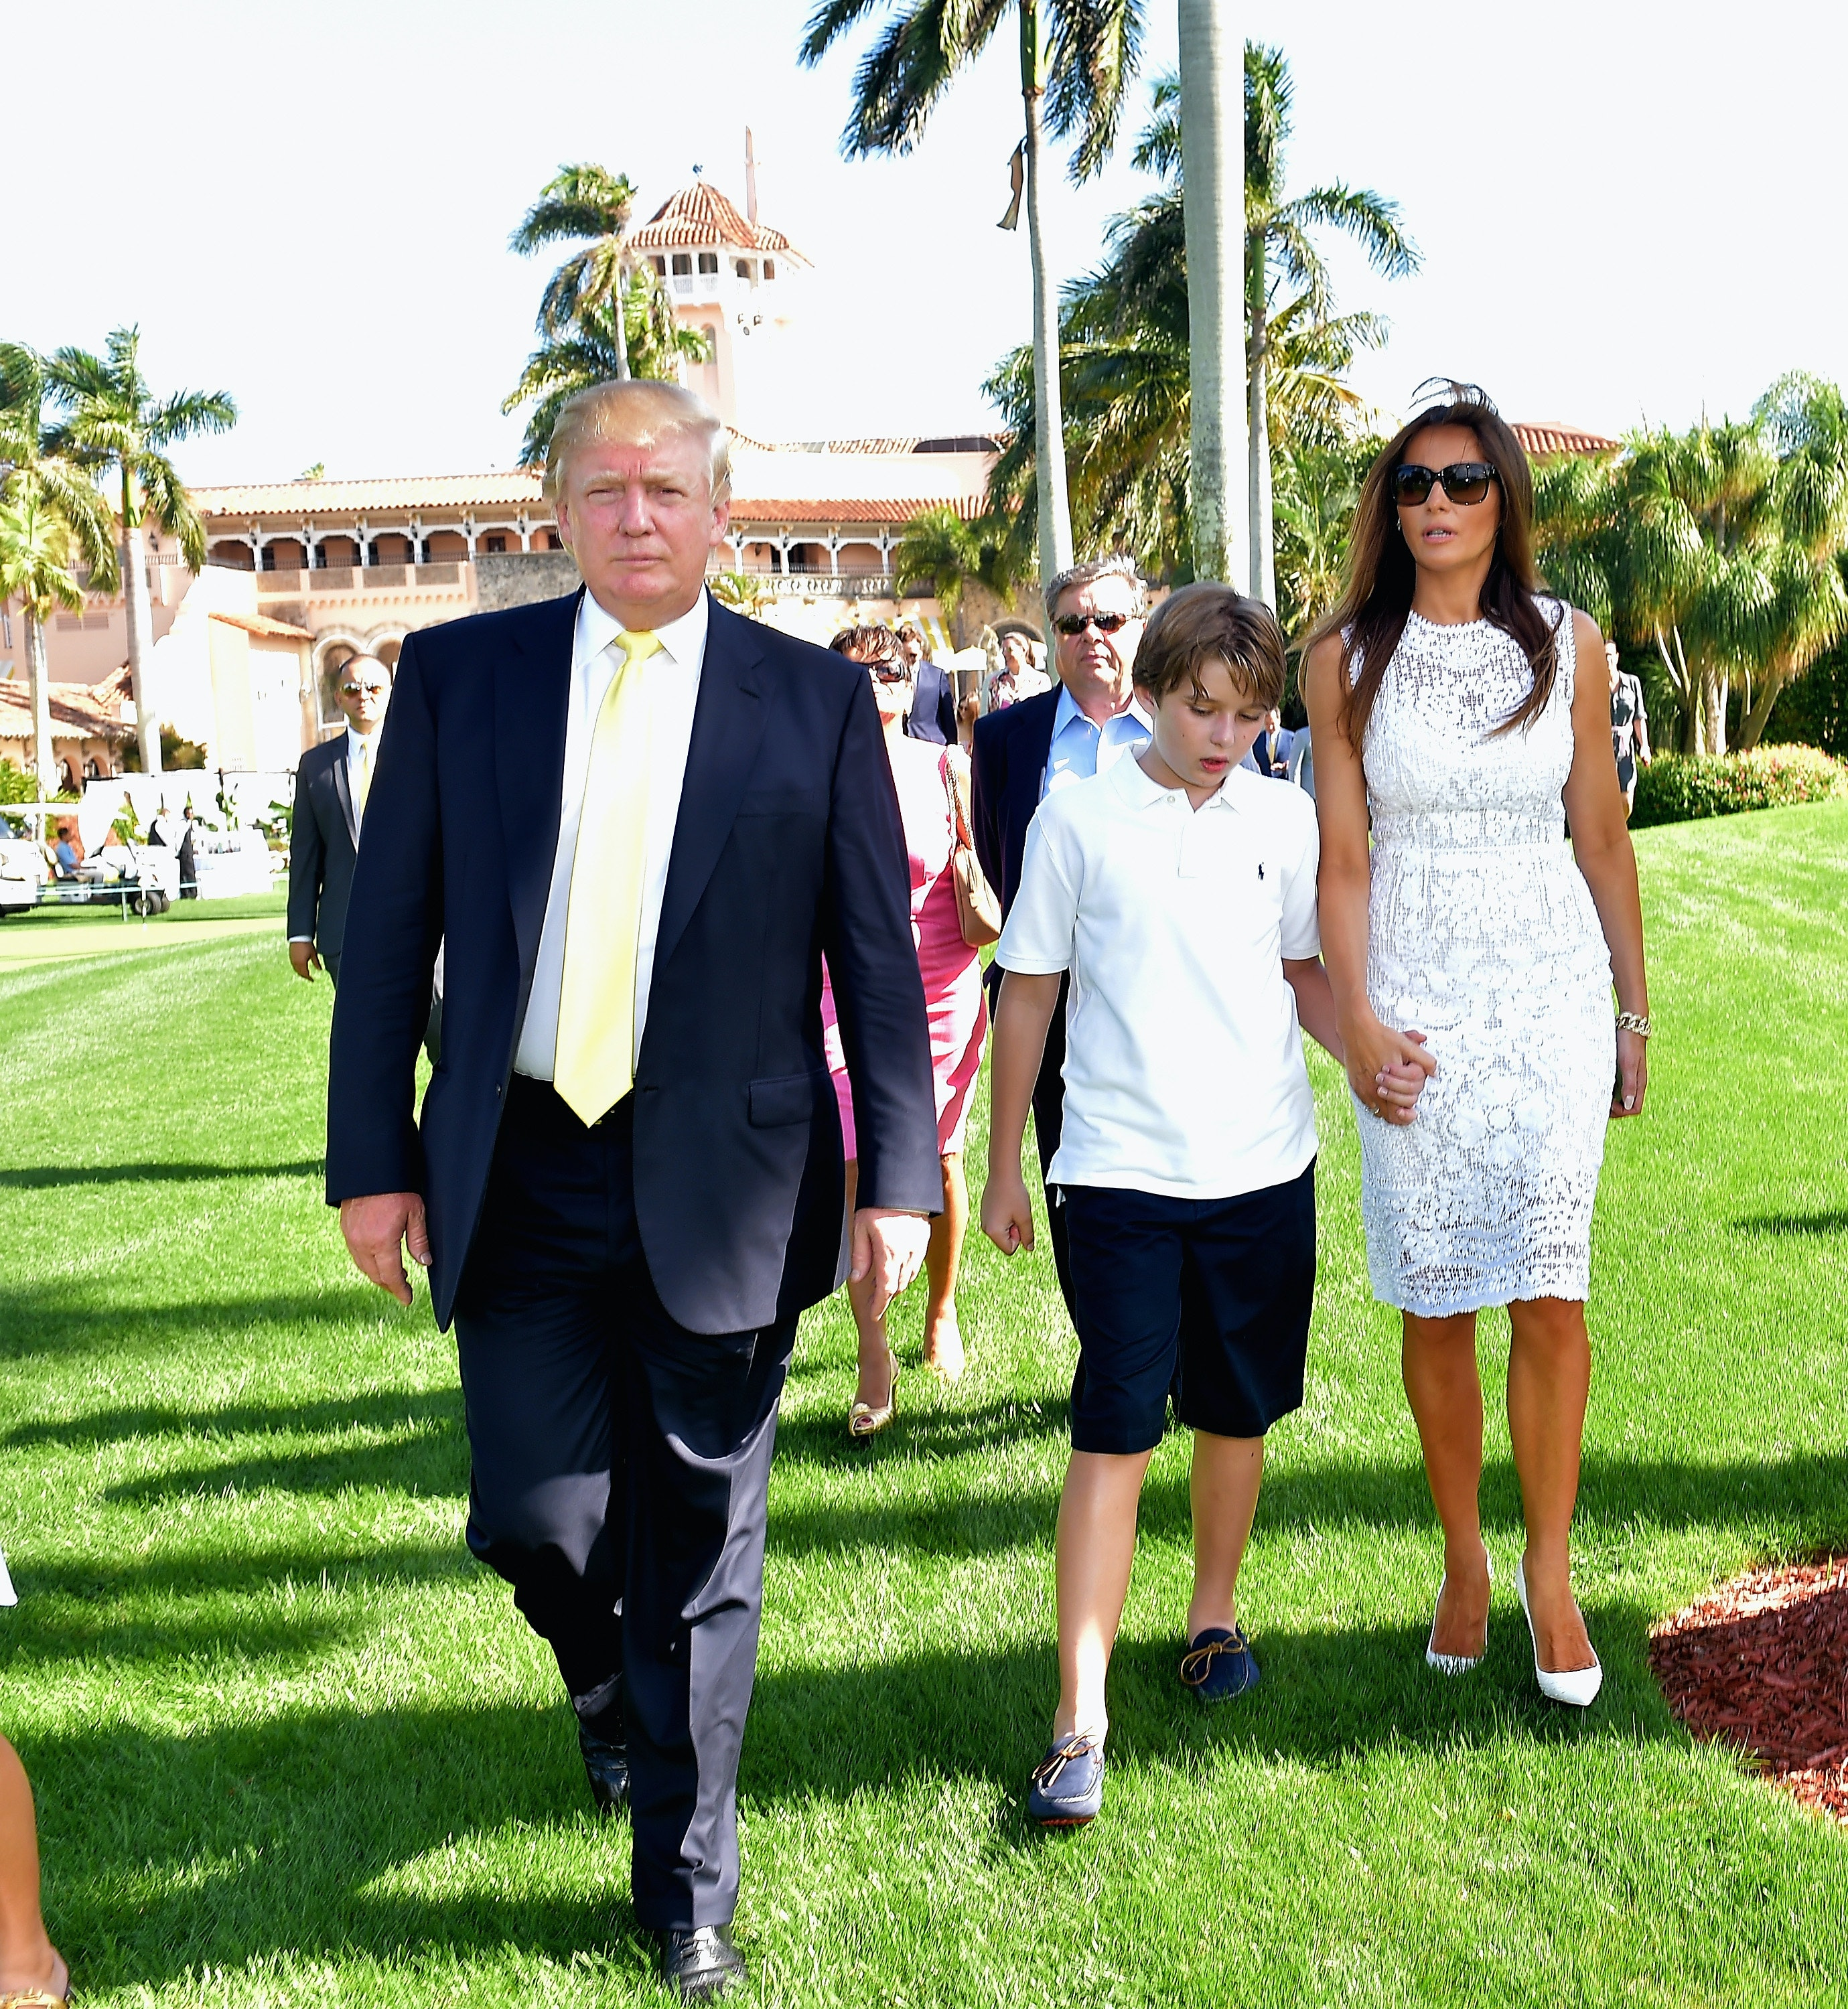 State Department is promoting Trump's Mar-a-Lago in online blog post